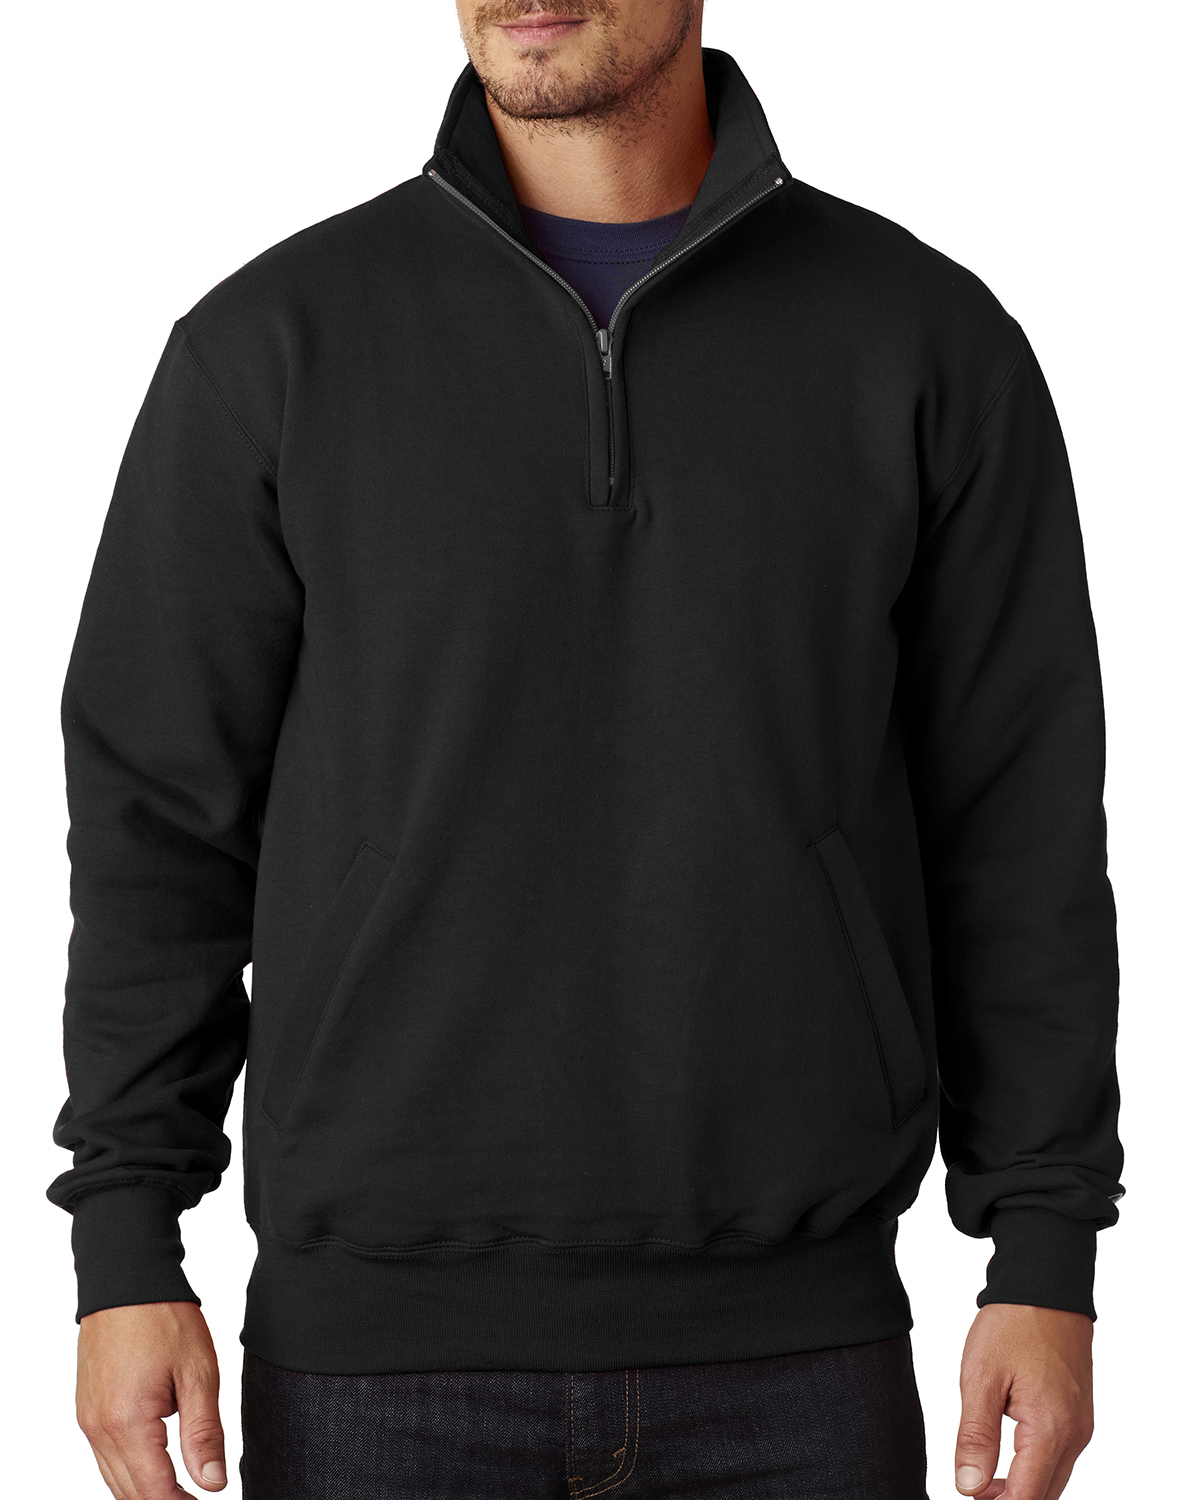 Champion S400 - Adult Double Dry Eco® 1/4-Zip Pullover Fleece